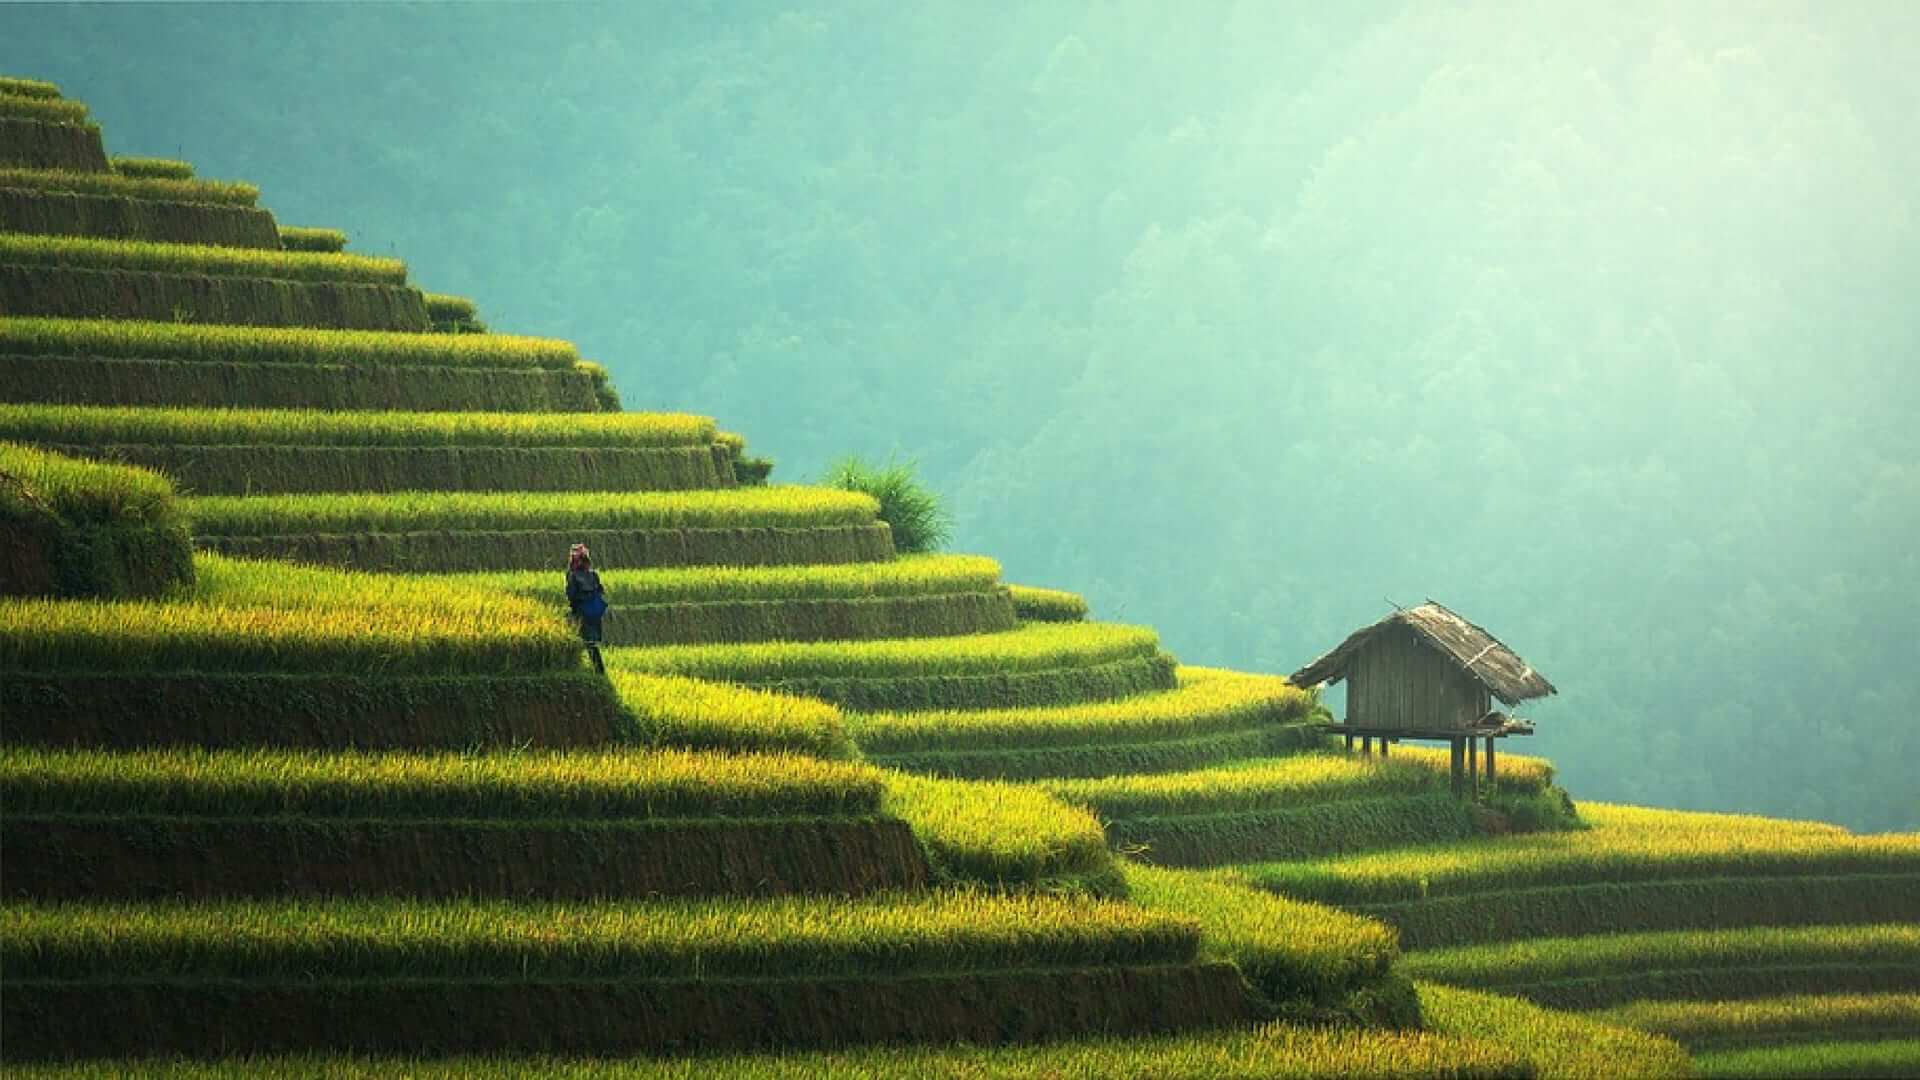 A man standing on a green rice terrace with blue sky in Bali.